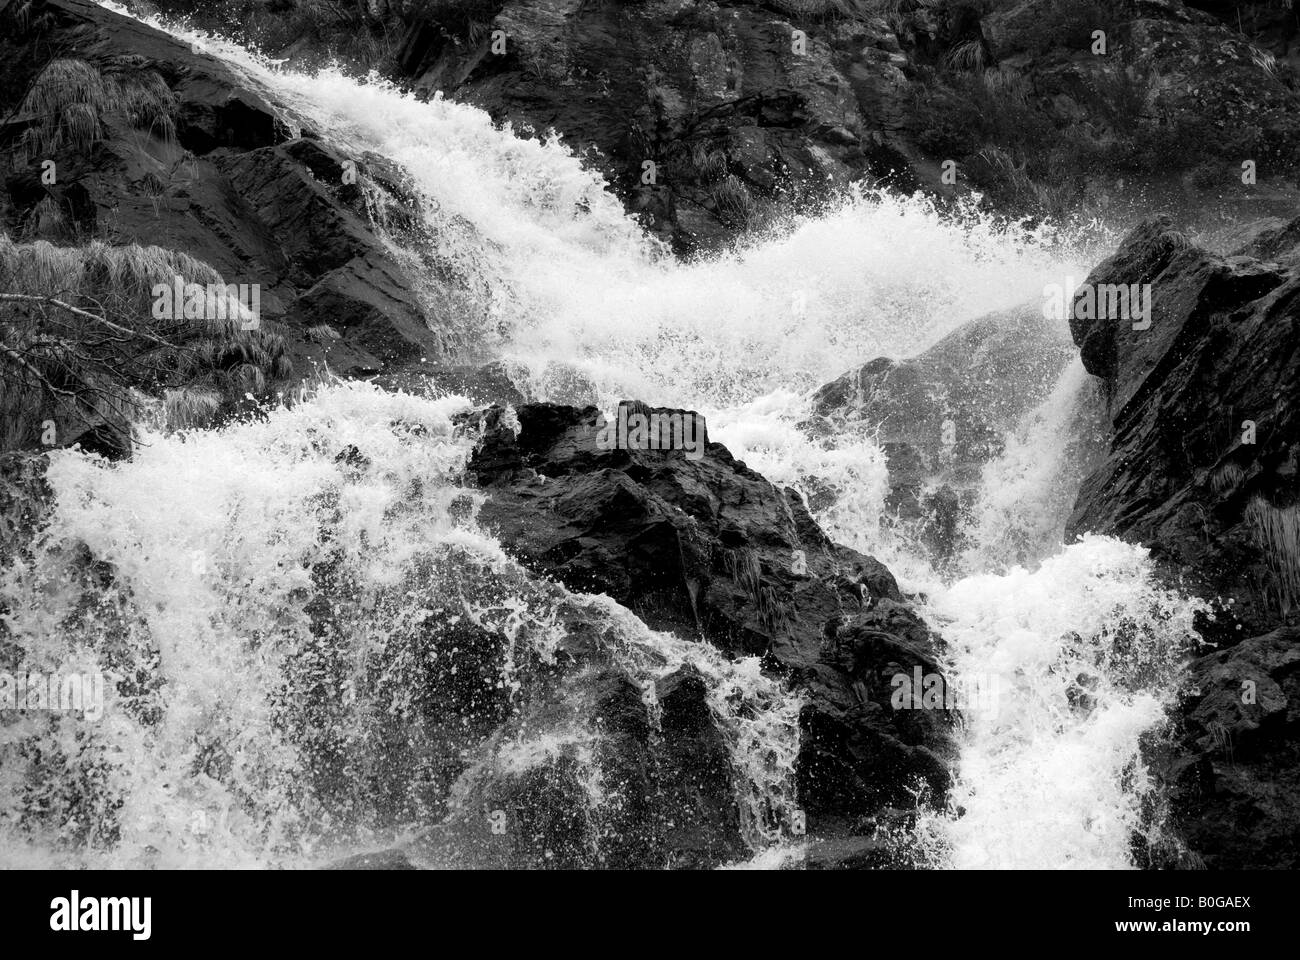 Flows meet - Stock Image